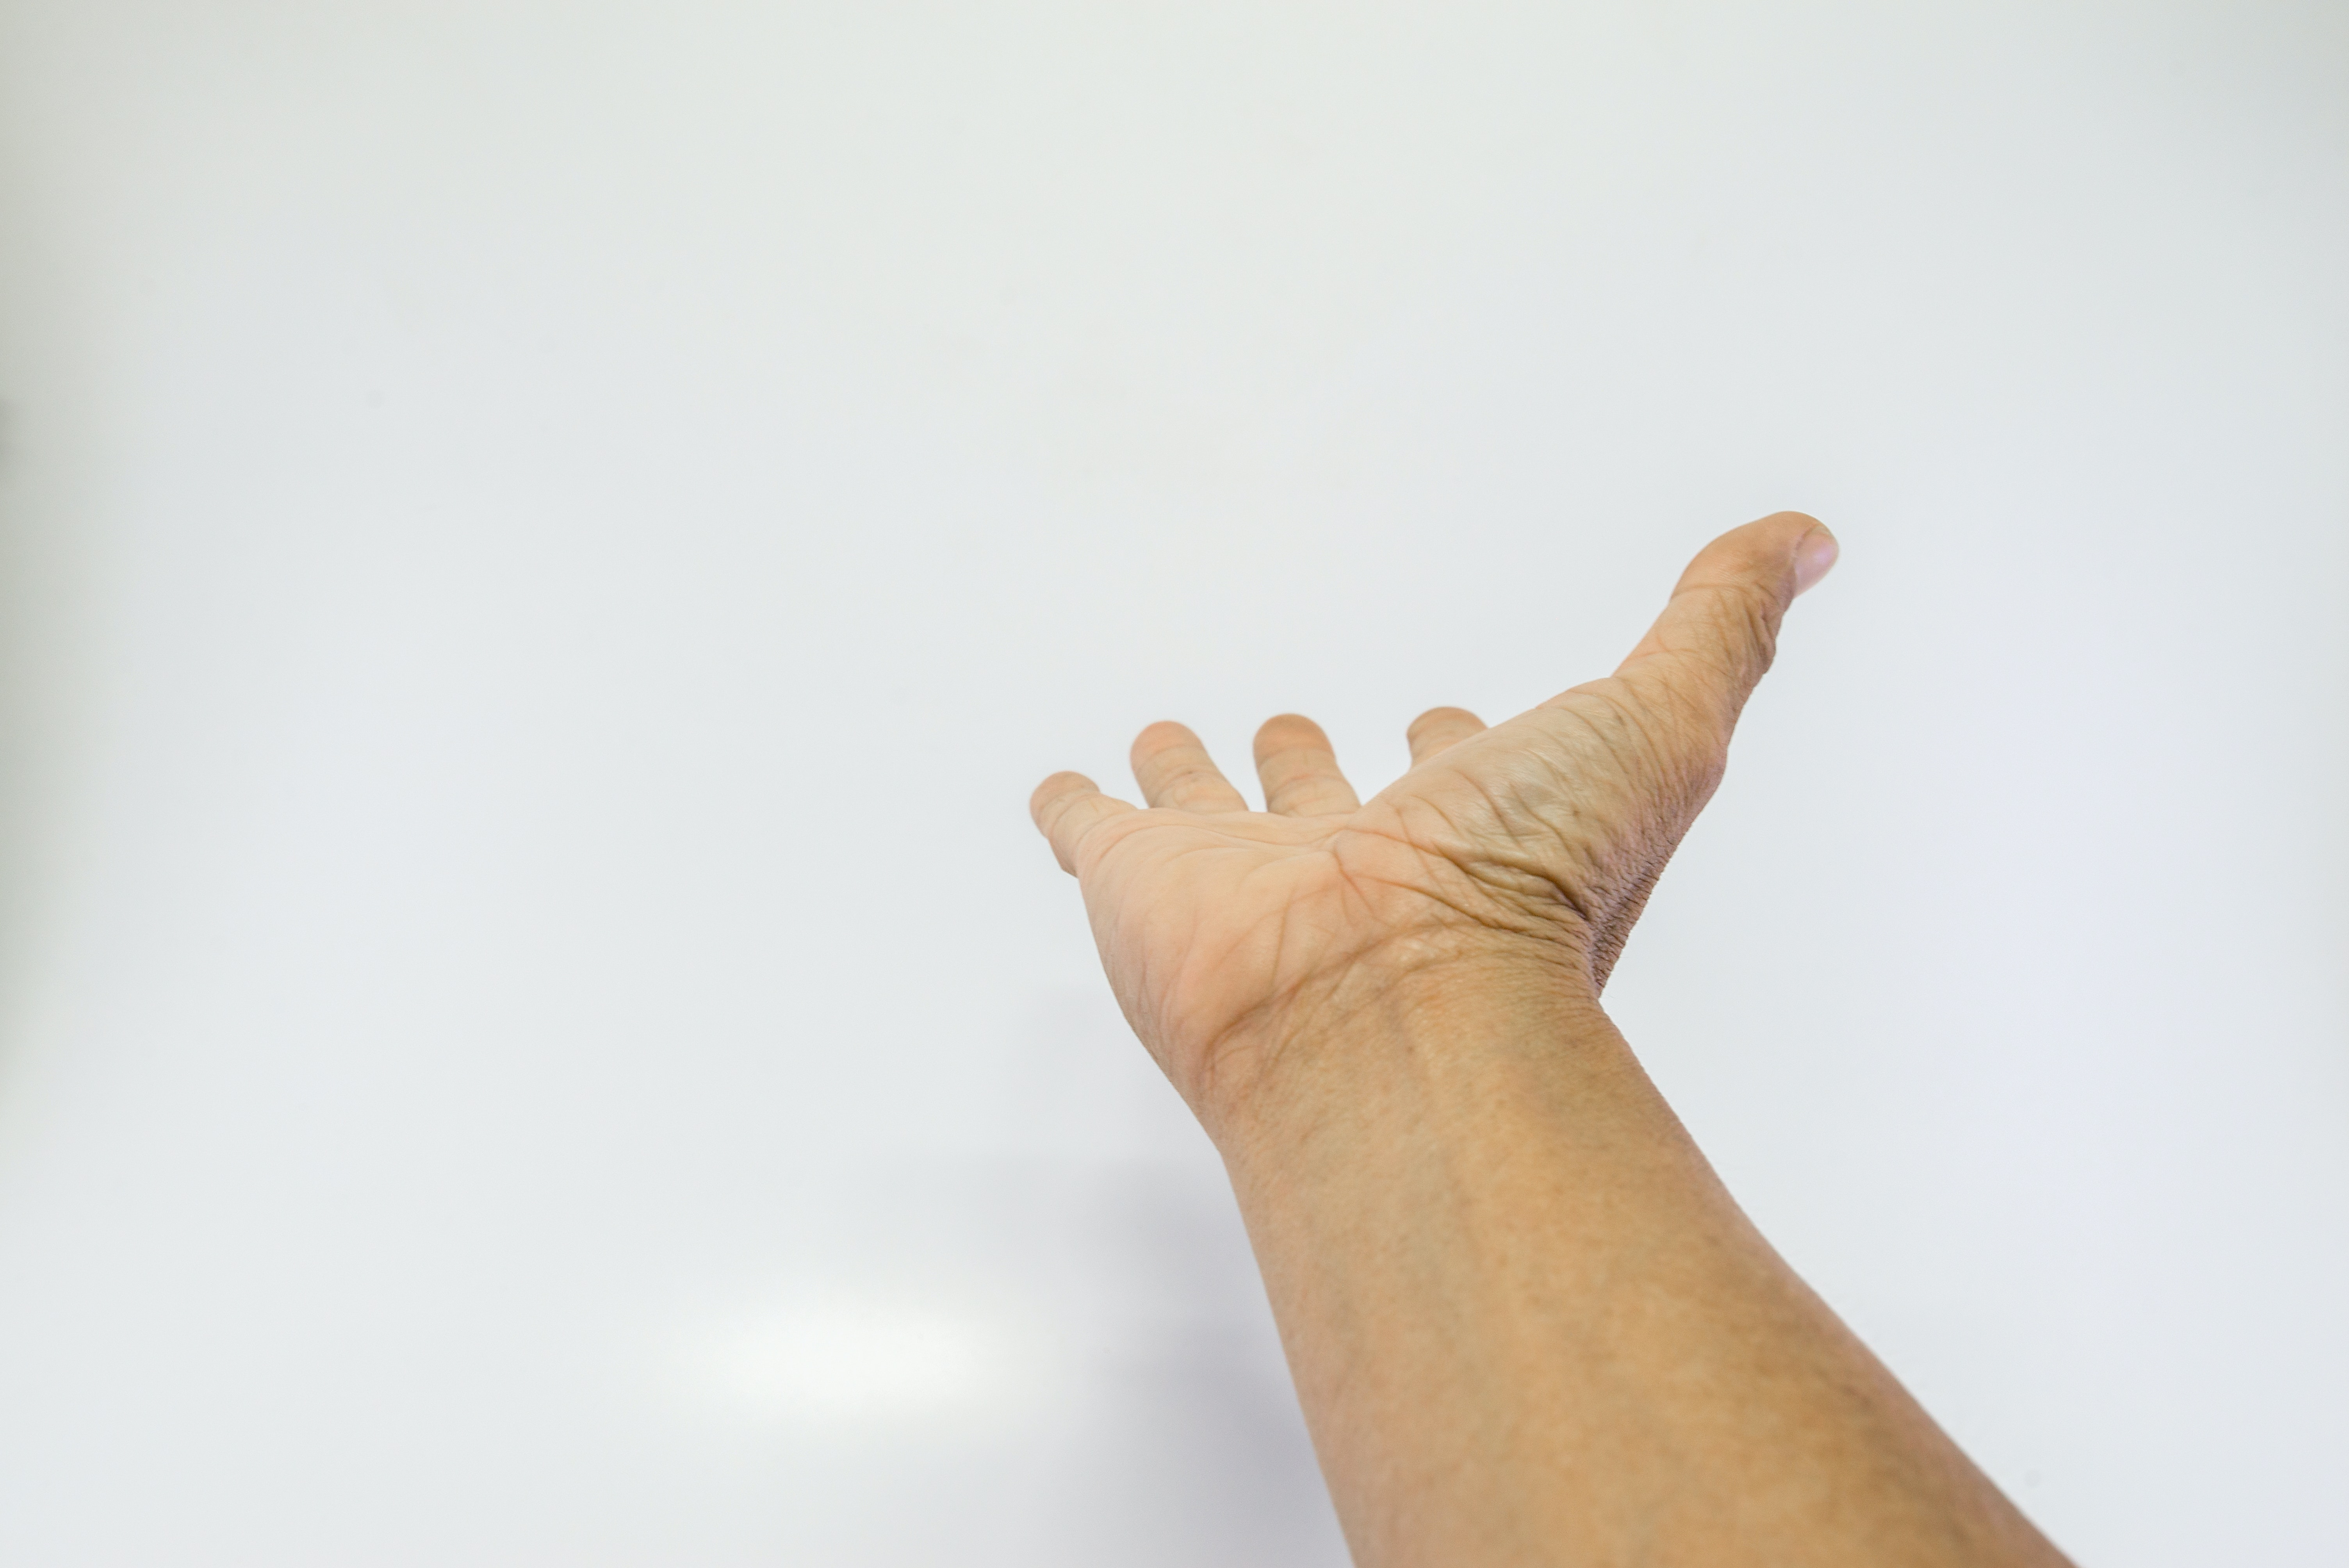 An image depicting a person suffering from wrist skin changes symptoms